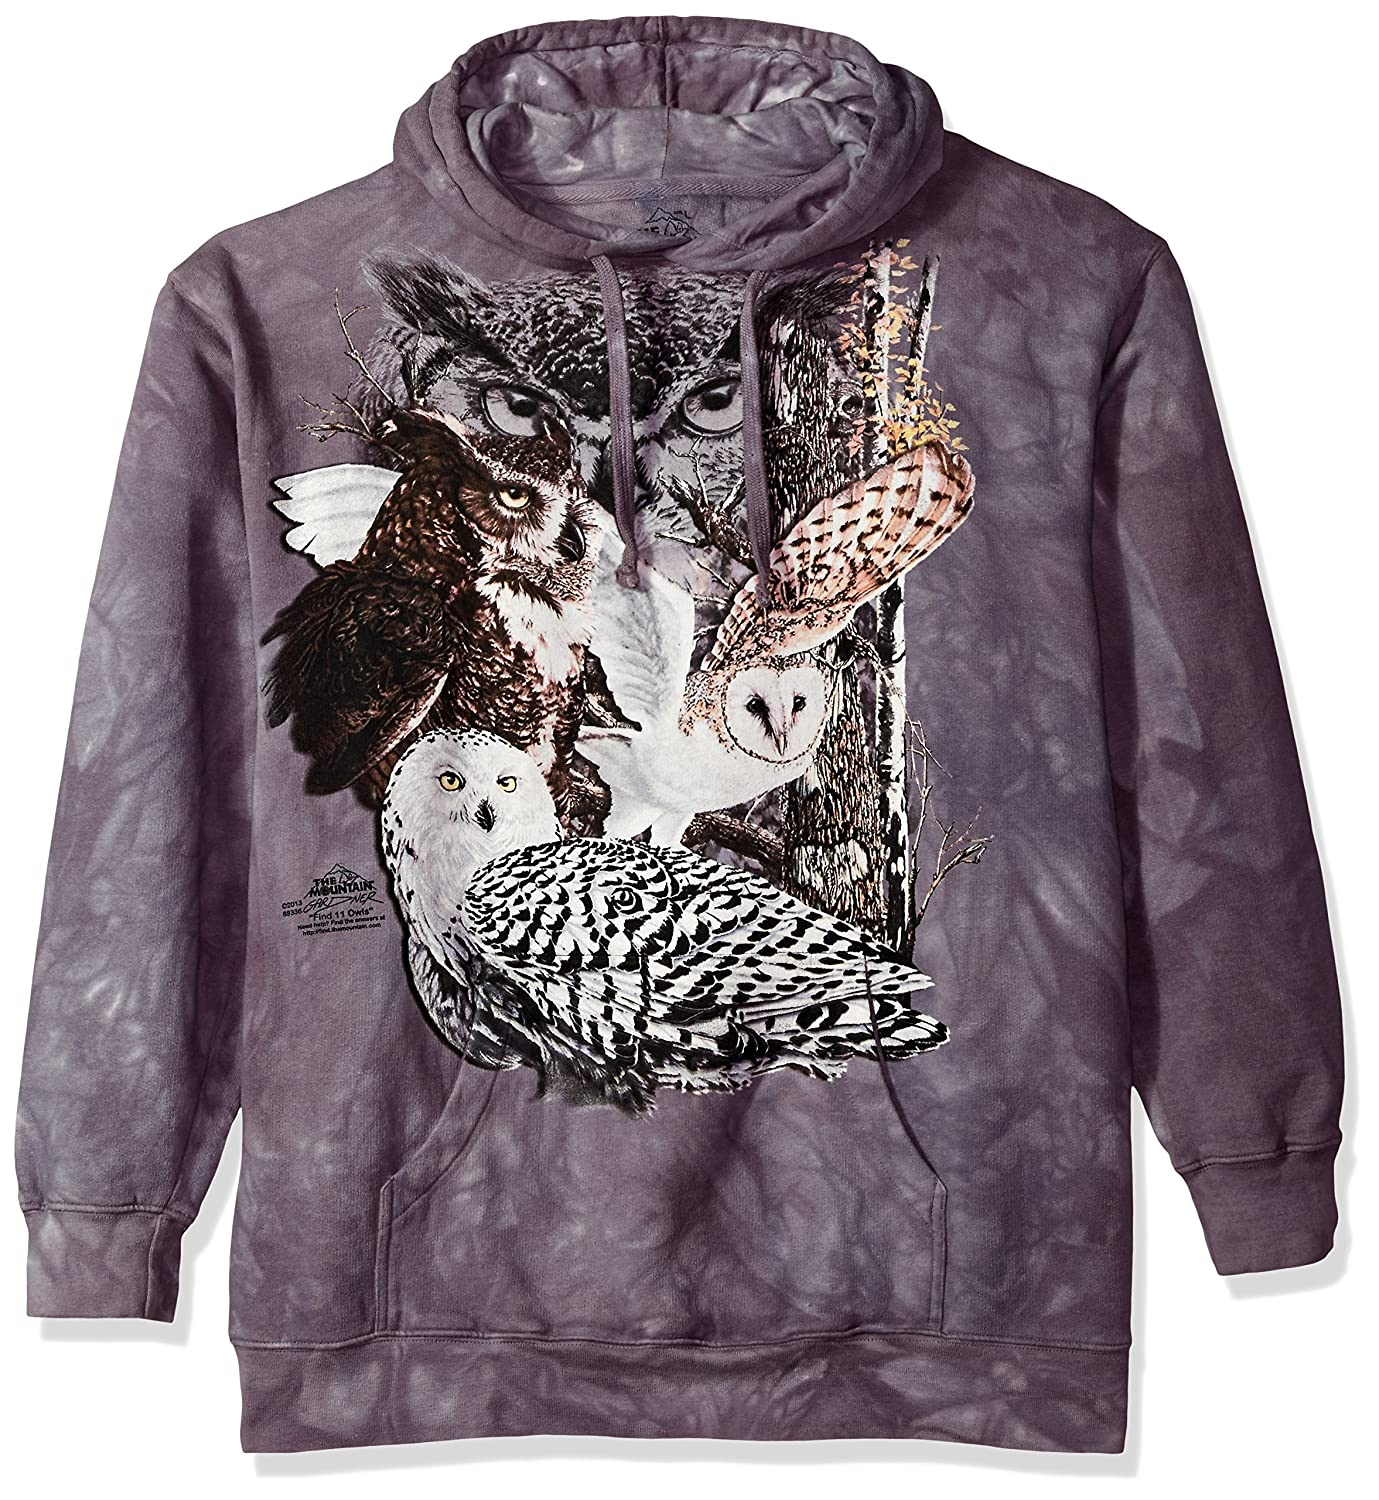 9f085aae5f79 Amazon.com  The Mountain Find 11 Owls Hooded Sweatshirt  Clothing